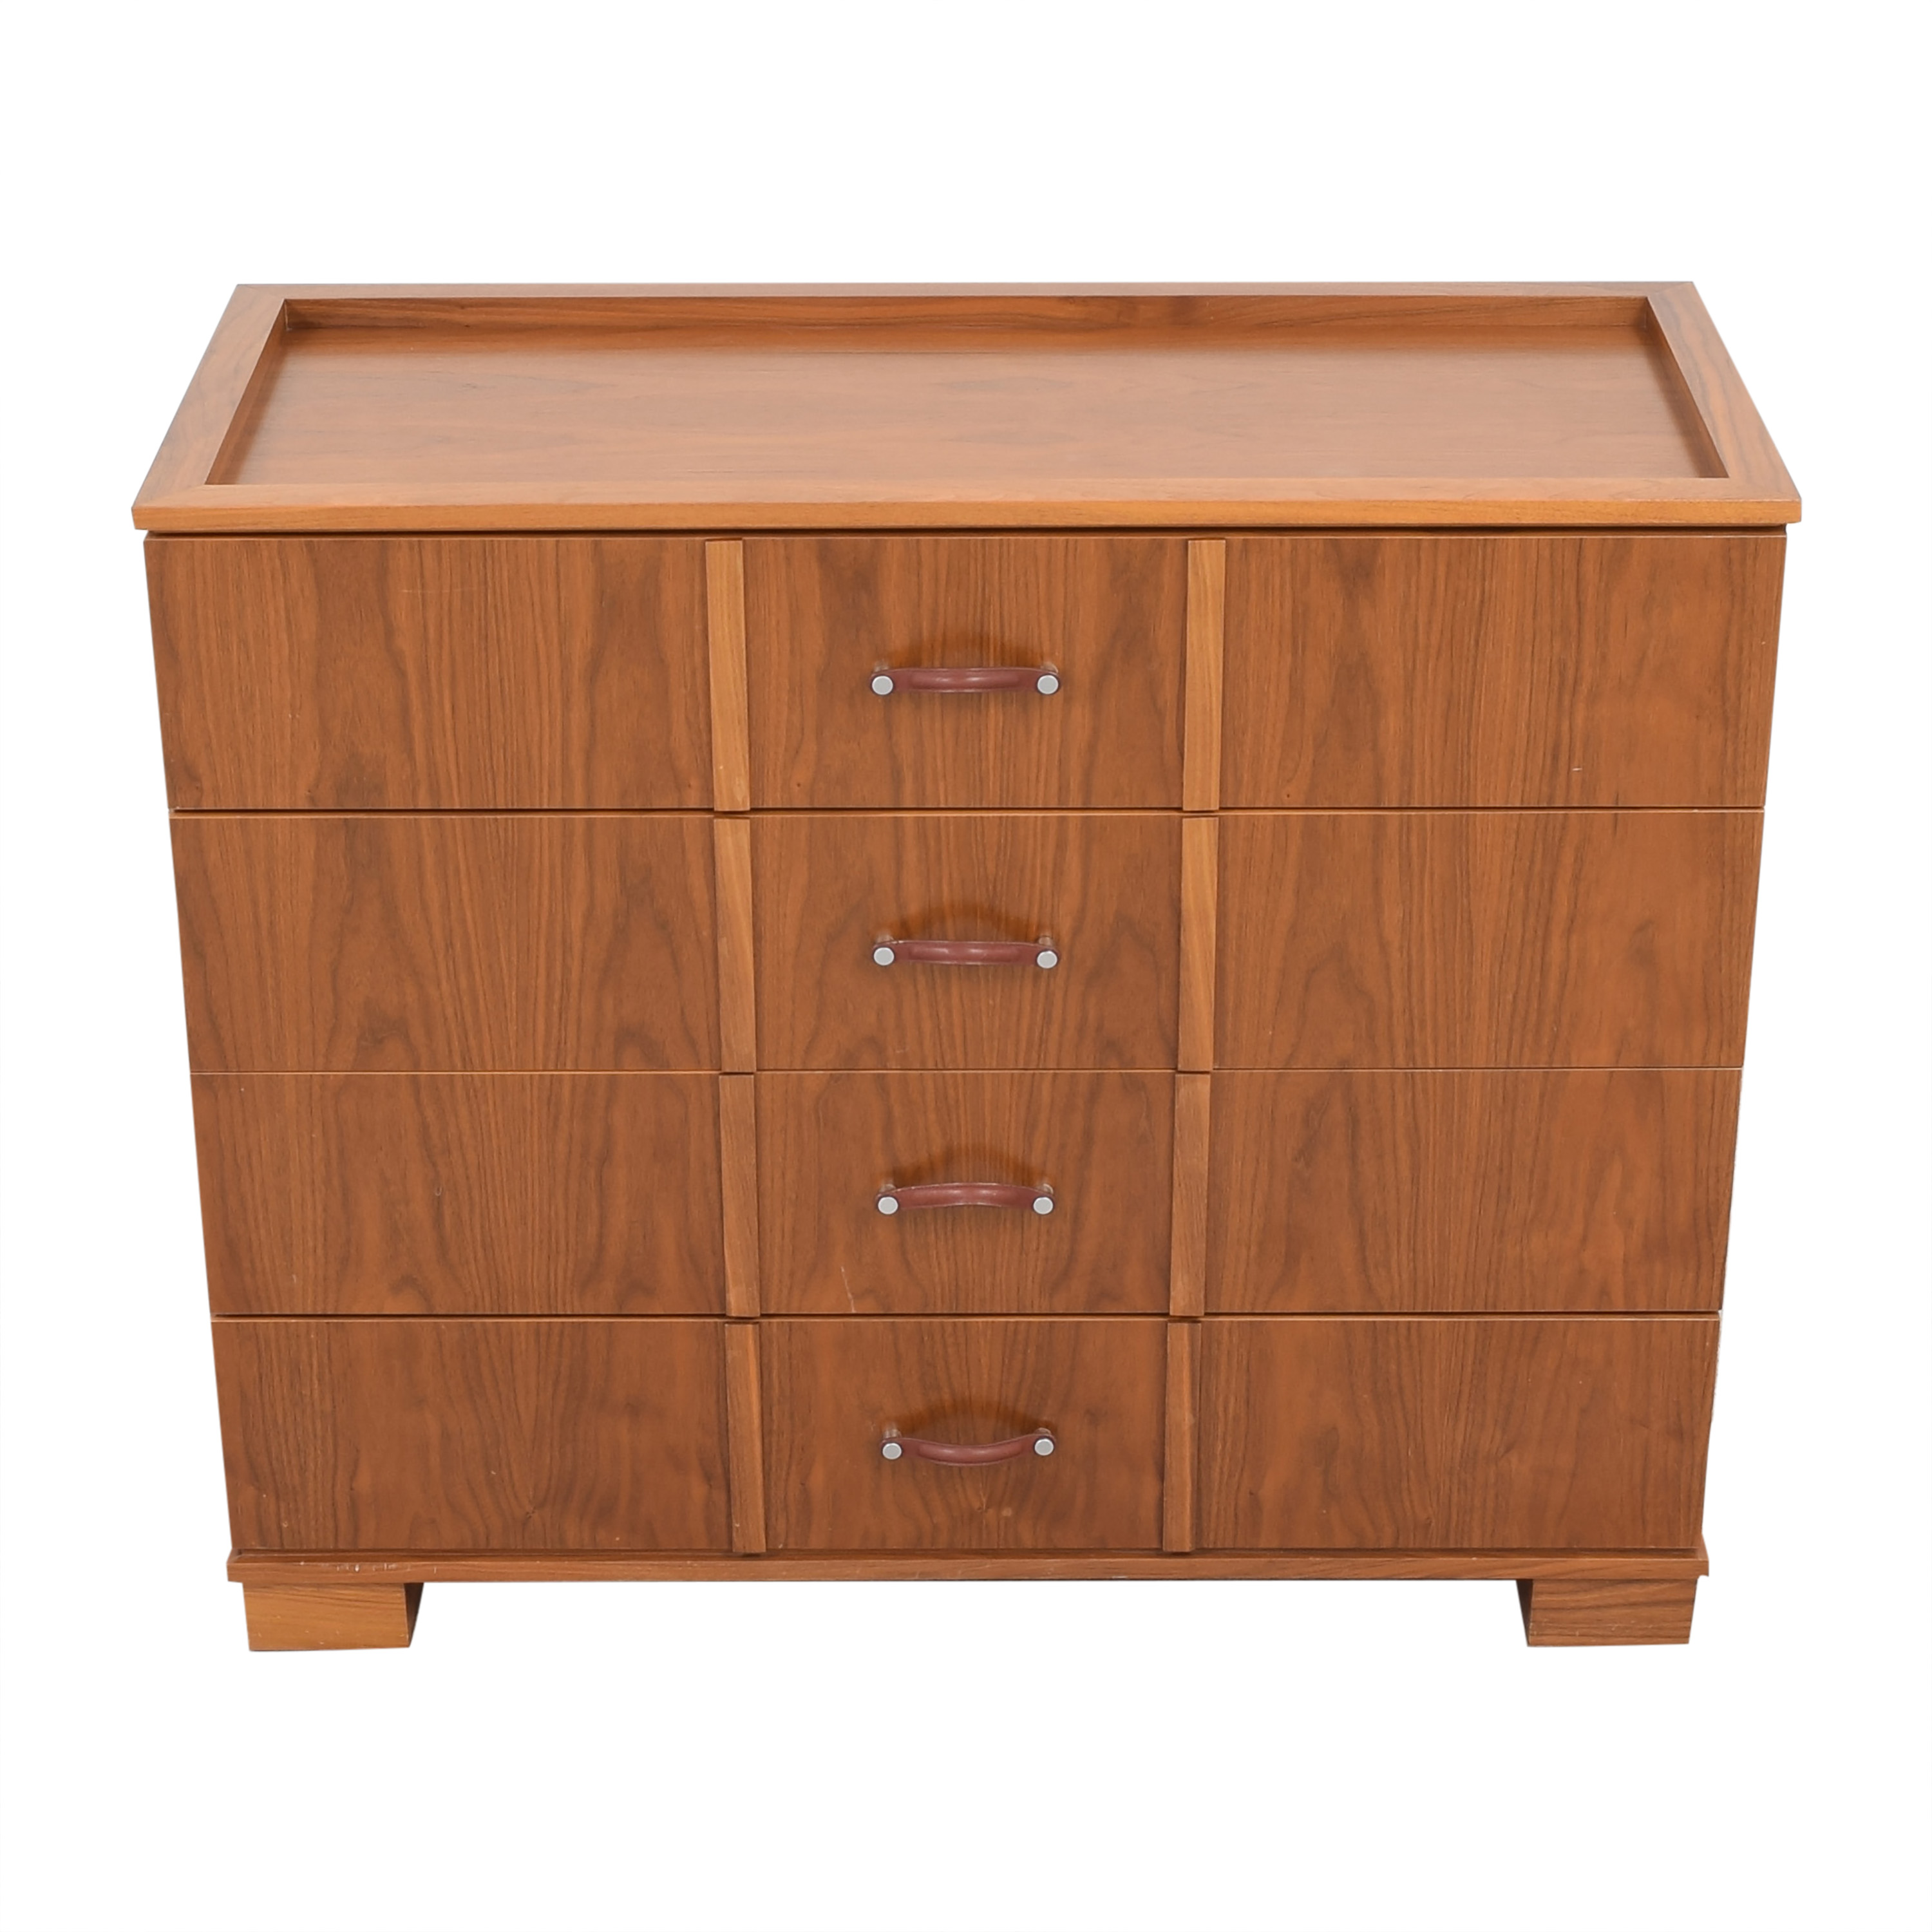 Ducduc Ducduc Morgan 4 Drawer Dresser nyc